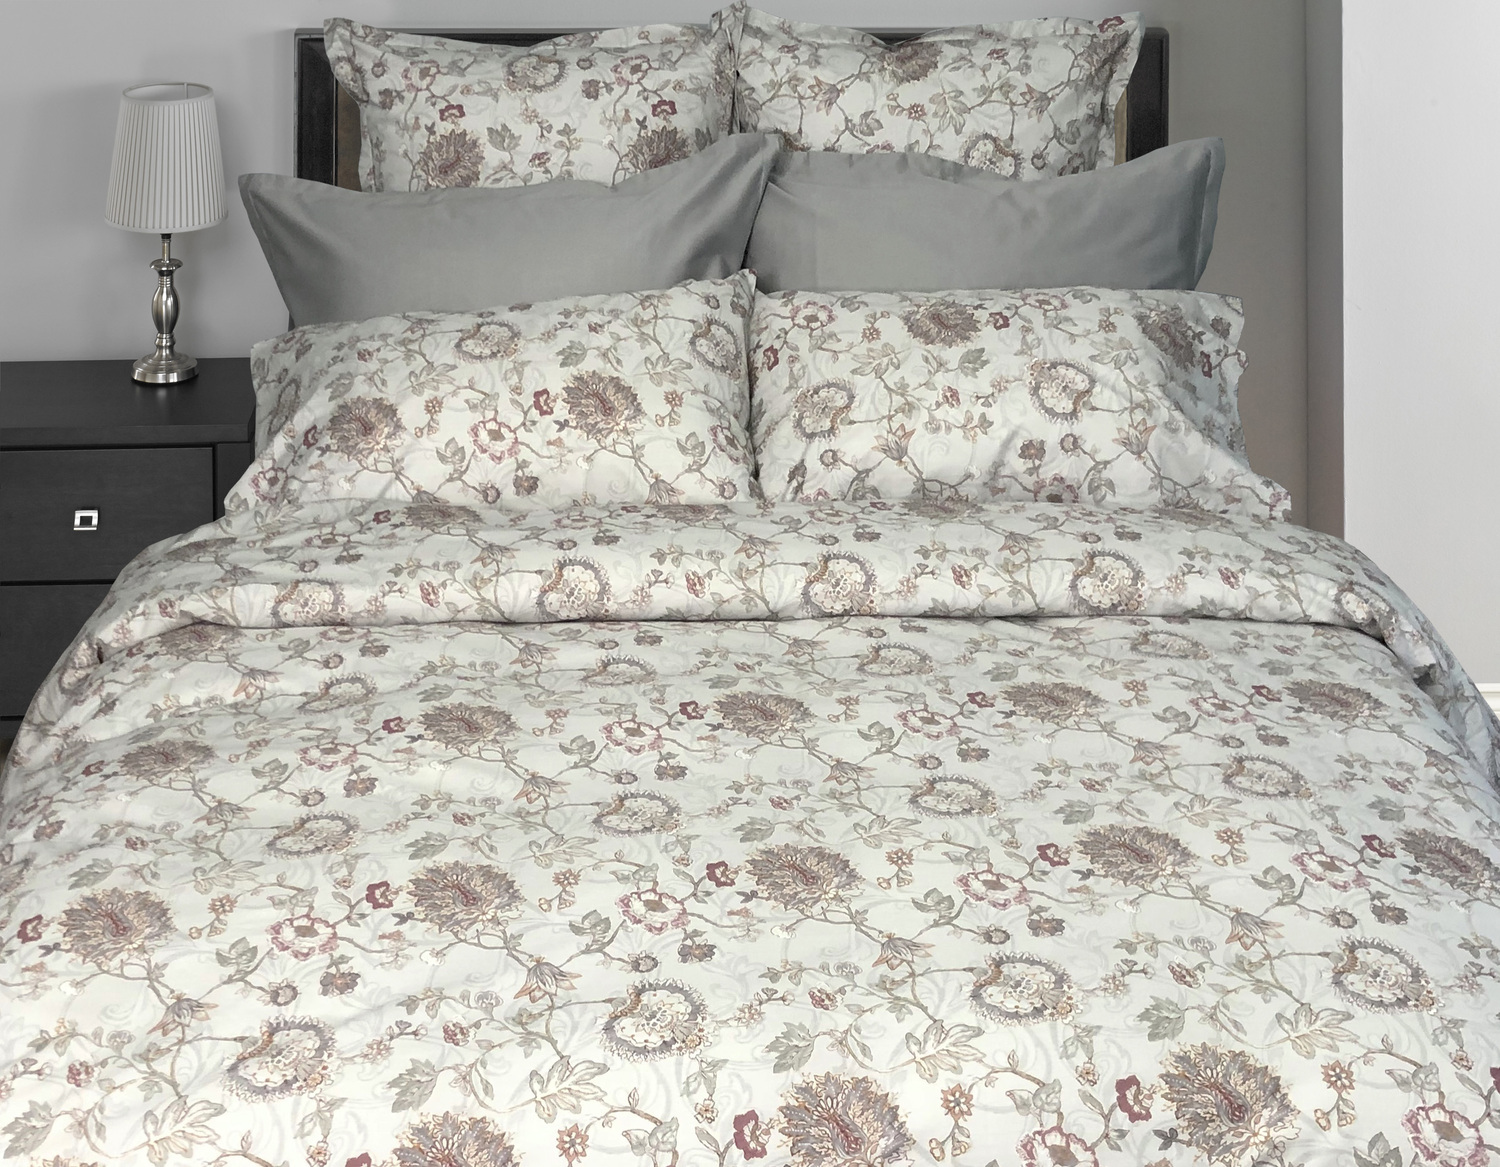 Chantale by CD Bedding of CA